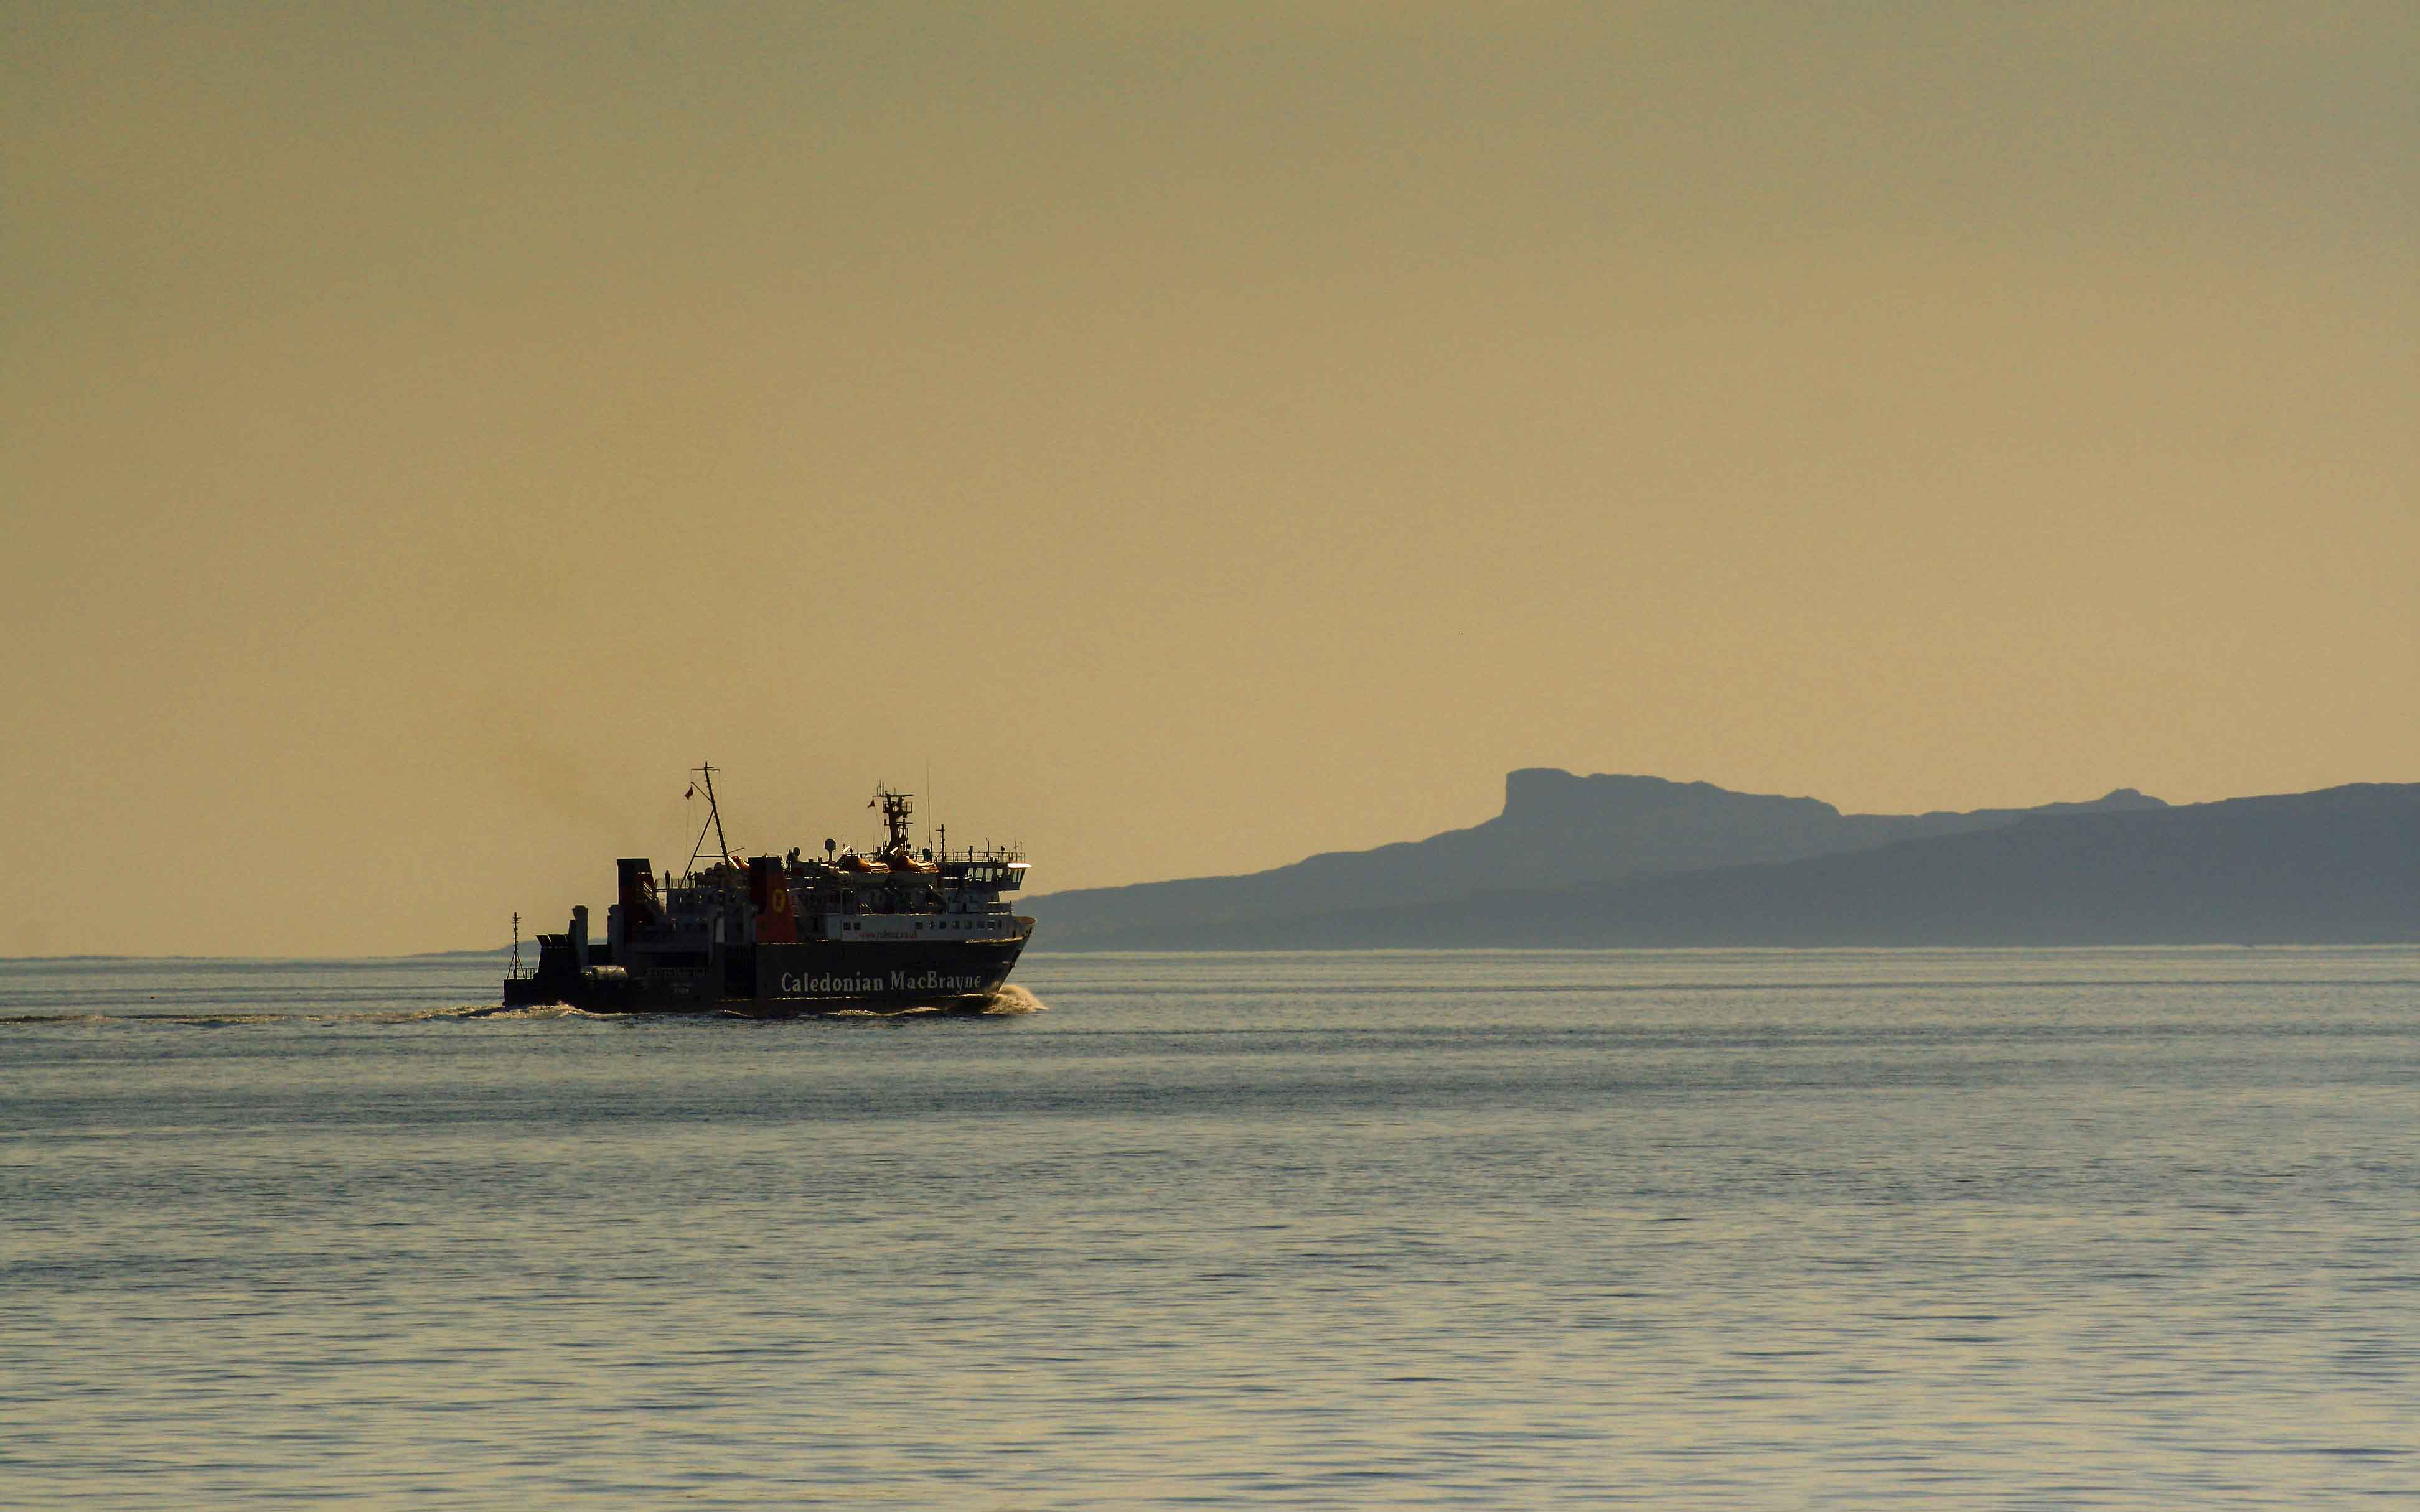 Lord of the Isles heading out past Eigg, bound for Lochboisdale (Ships of CalMac)